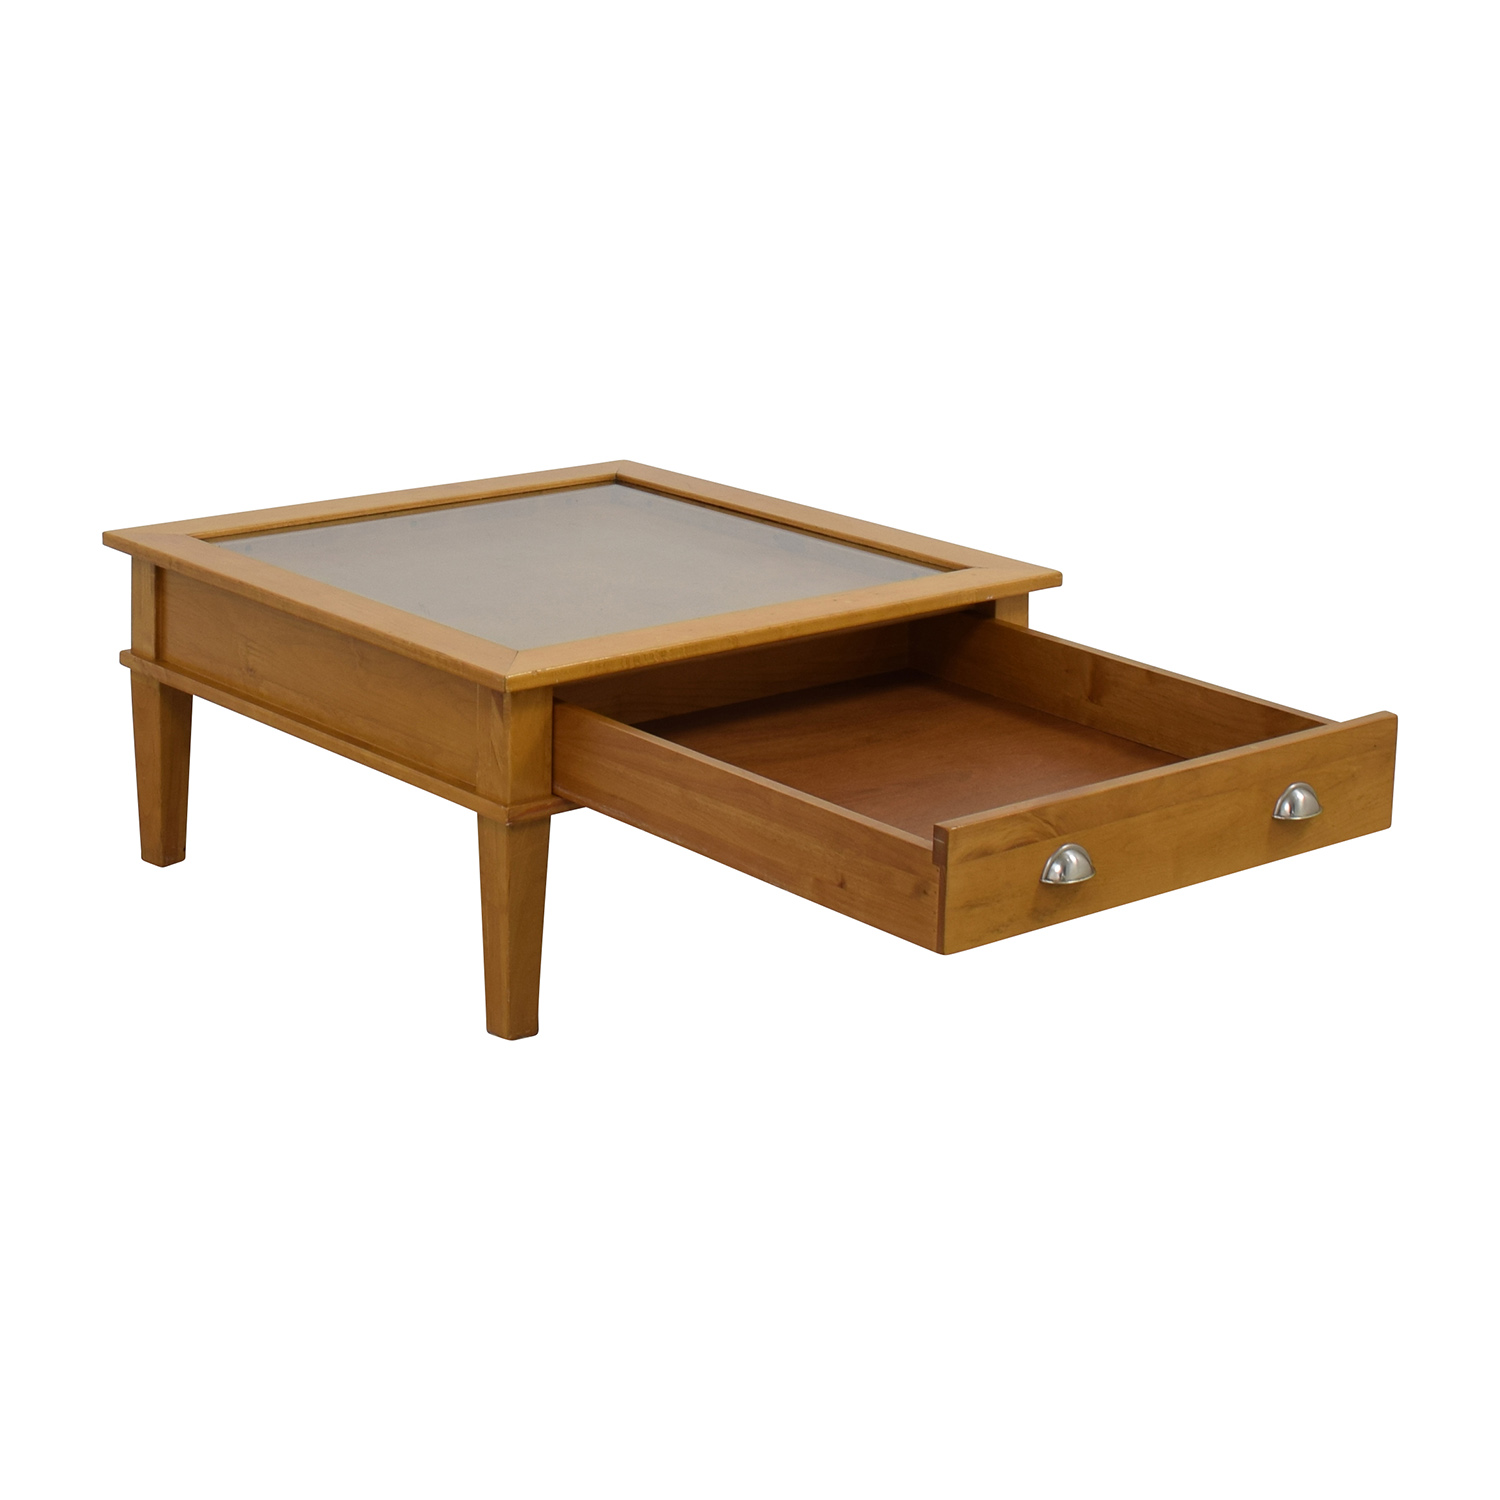 80 Off Wooden Shadow Box Square Coffee Table Tables